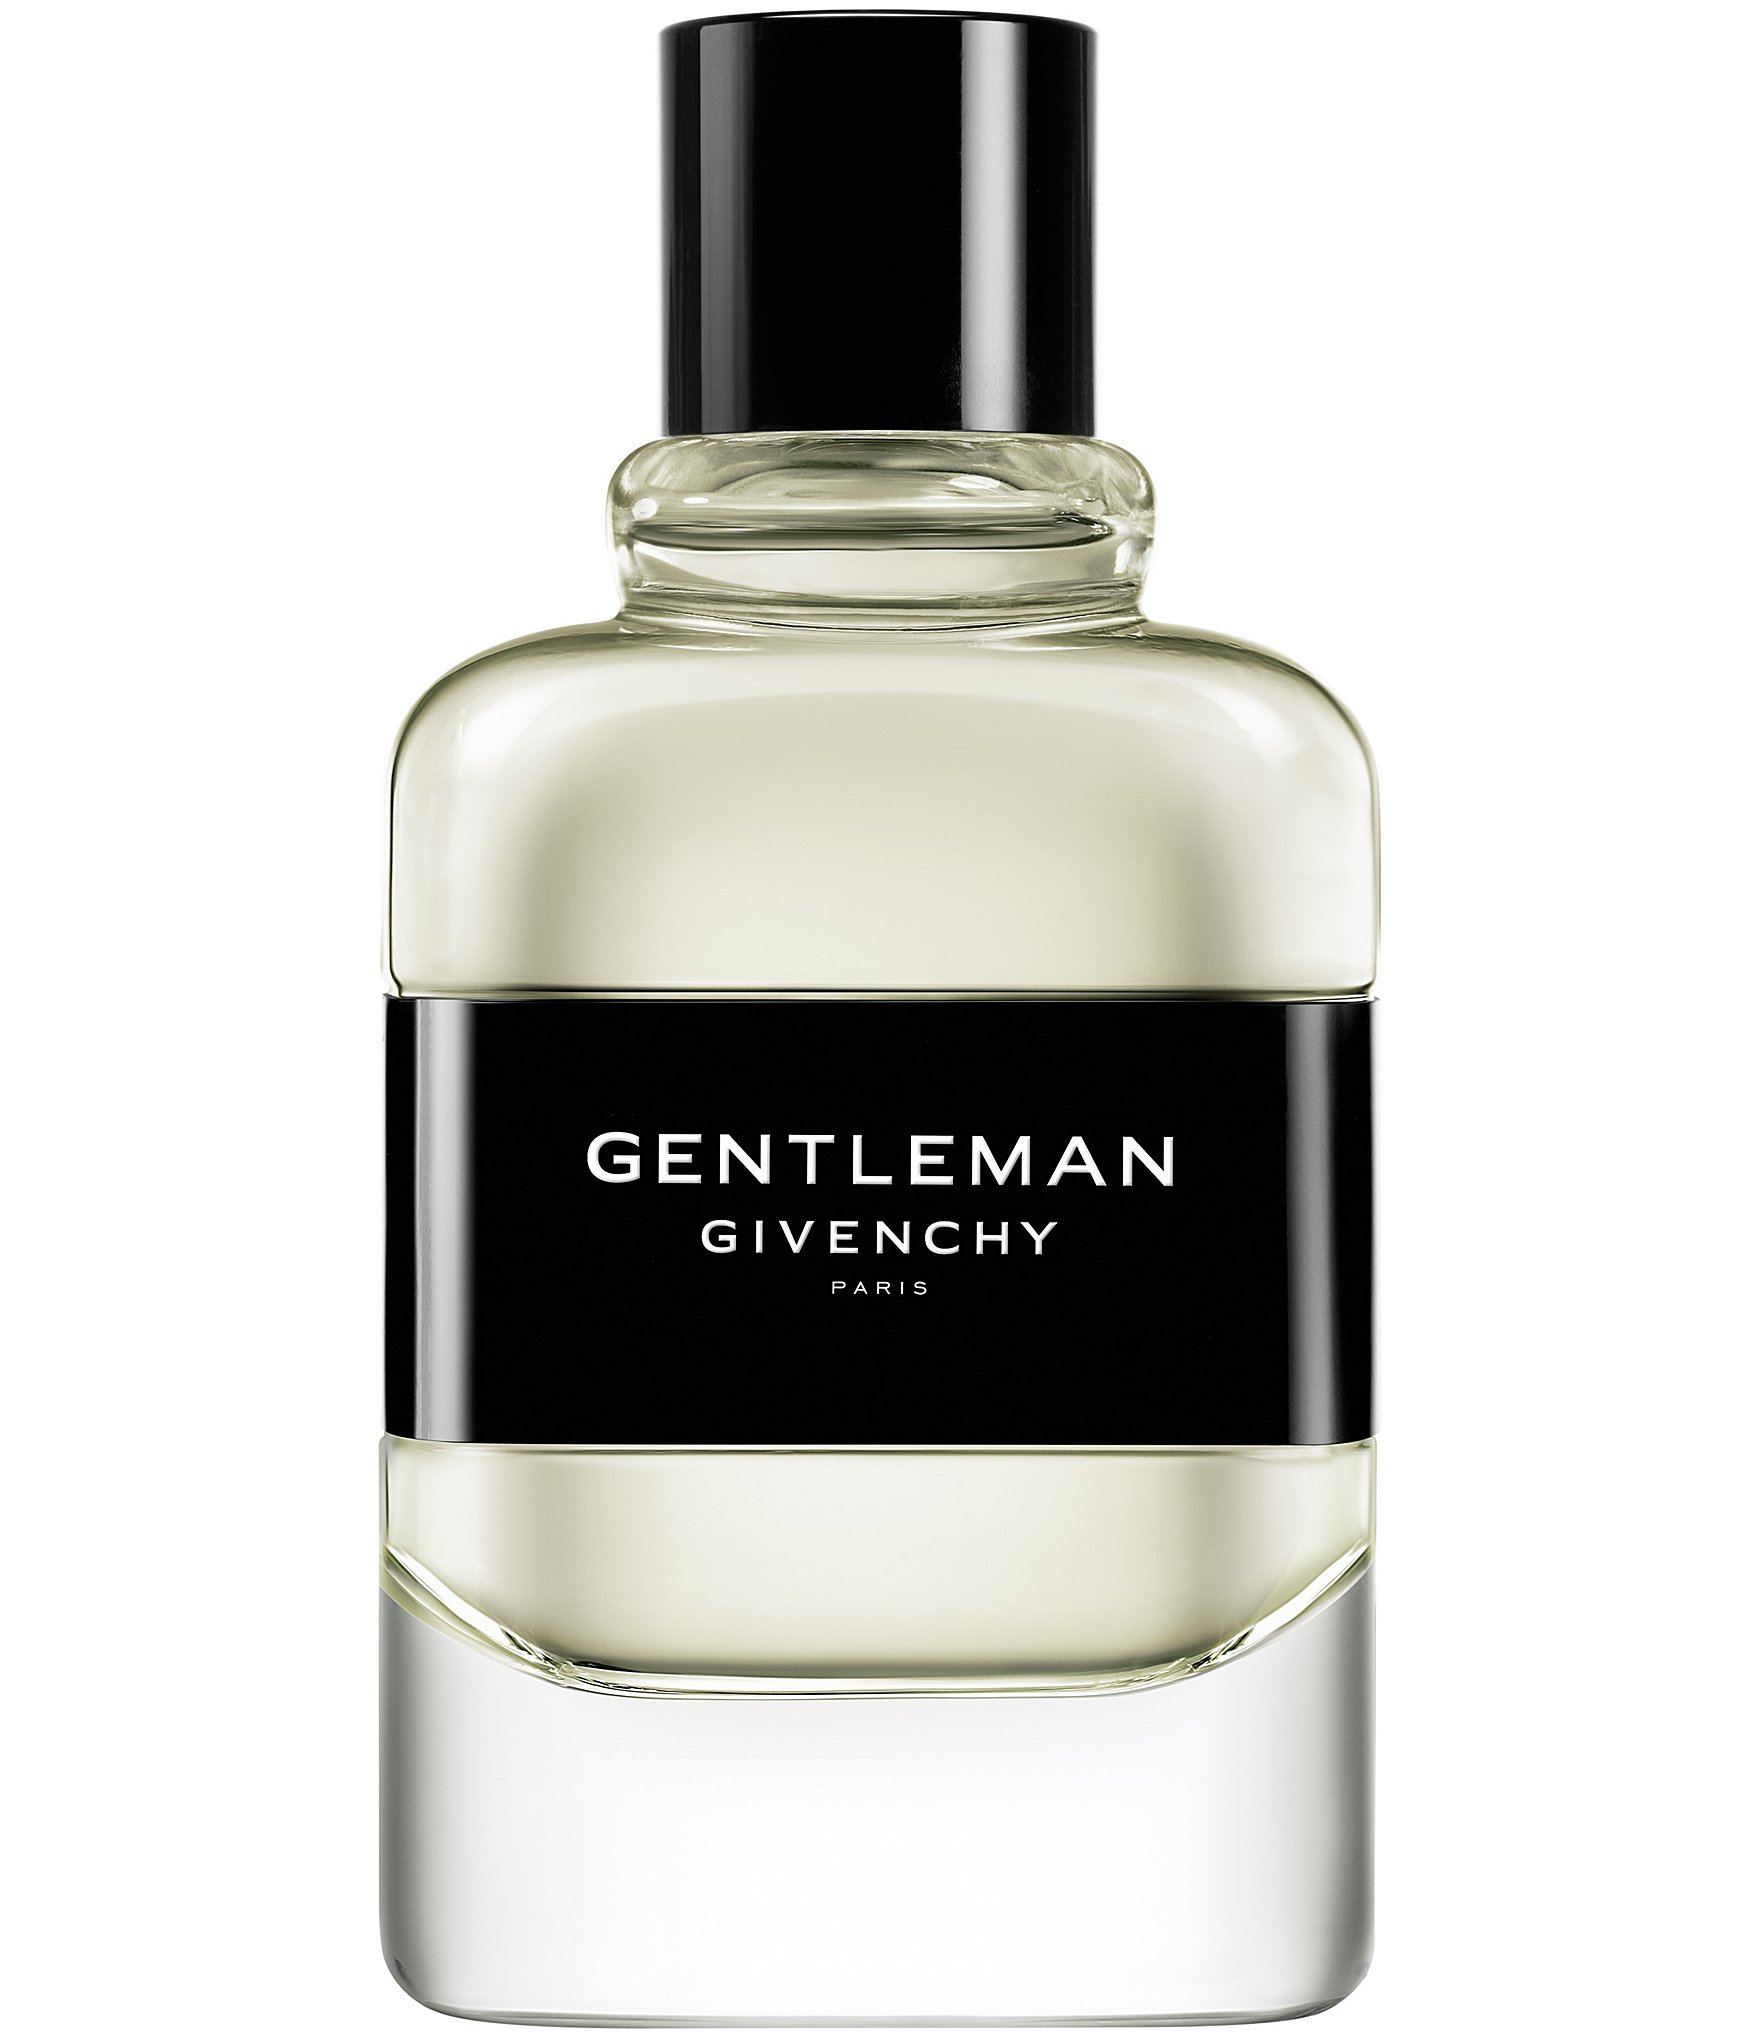 givenchy gentleman eau de toilette spray dillards